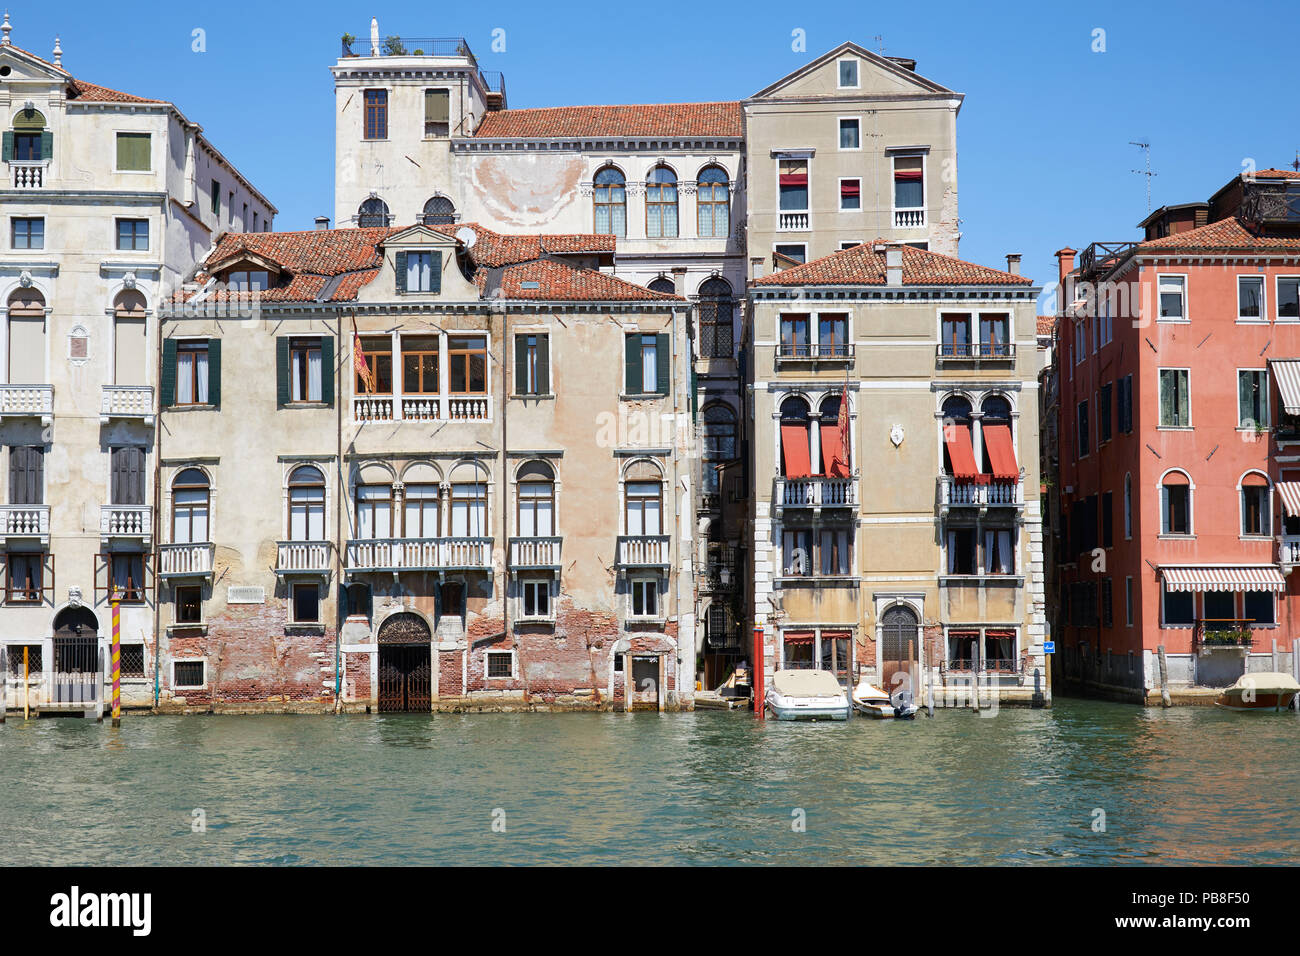 Venice buildings facades and canal in a sunny day in Italy, nobody - Stock Image